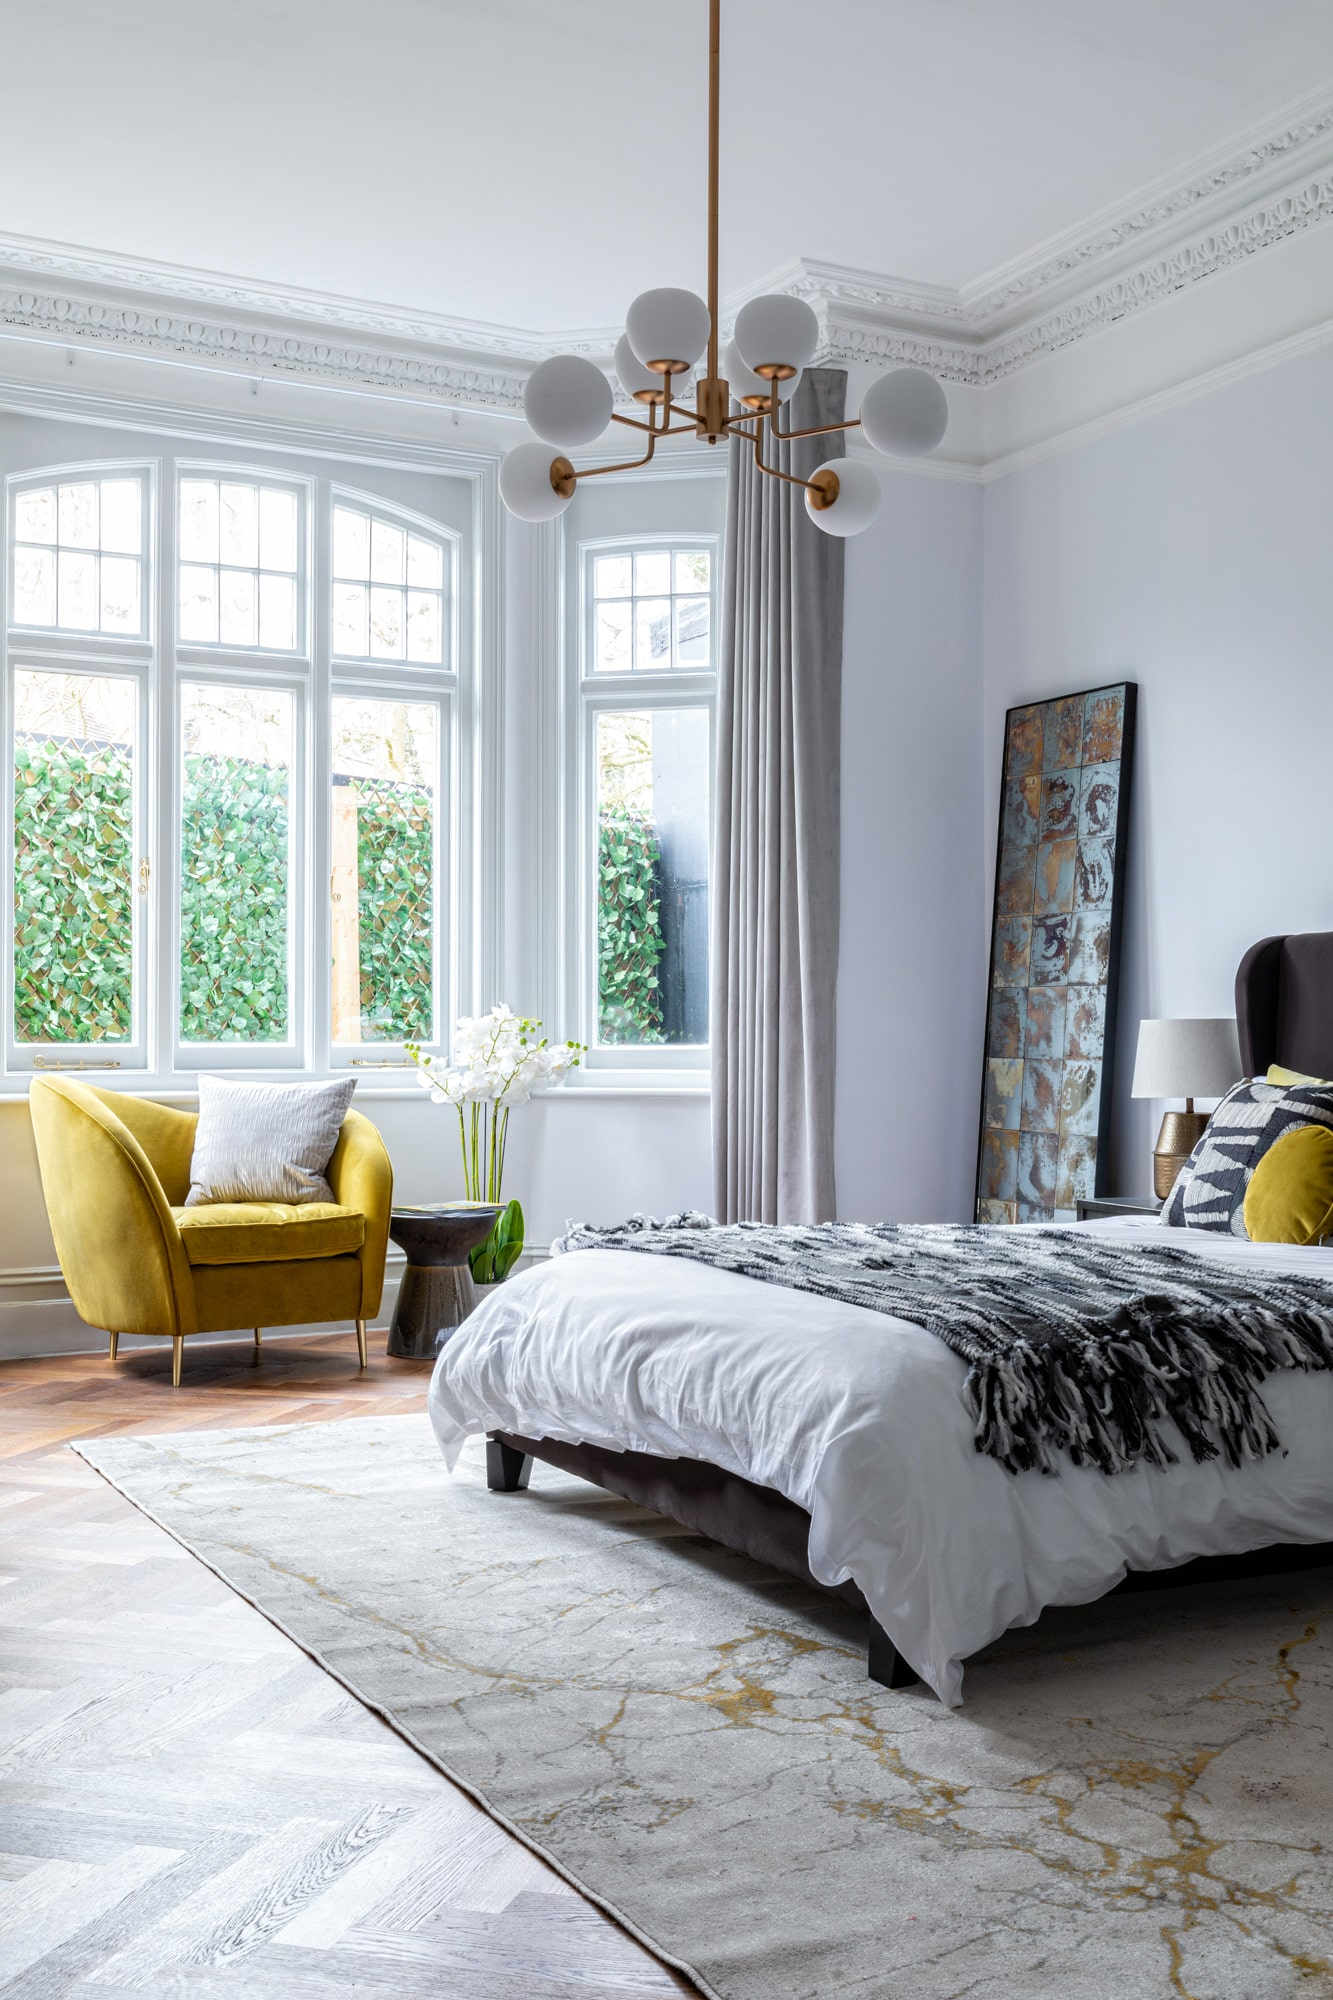 Interior design photograph of a bedroom with light blue walls, brown velvet bed, yellow armchair and beautiful ceiling lighting